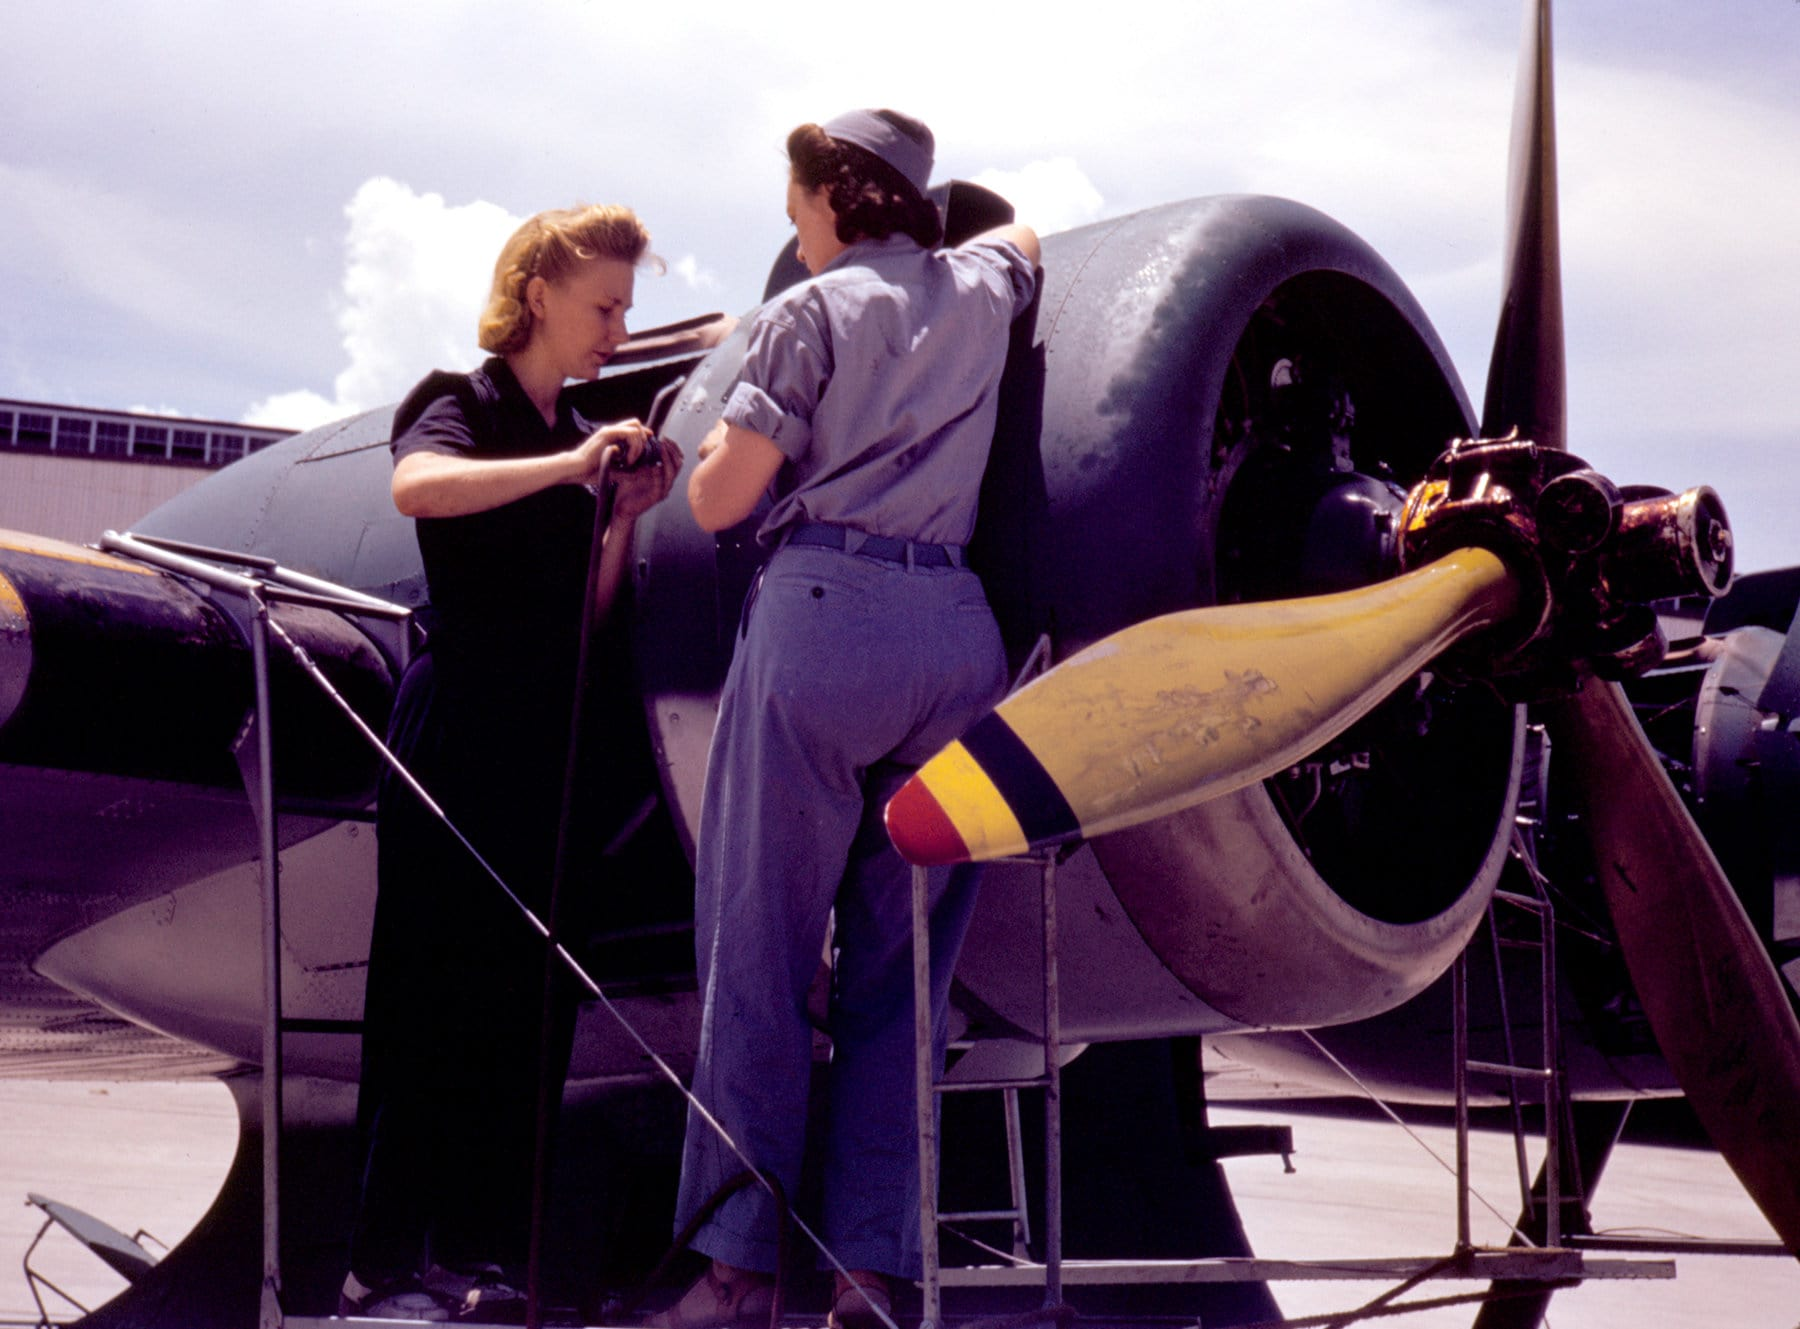 Two women repairing a WWII propeller plane engine